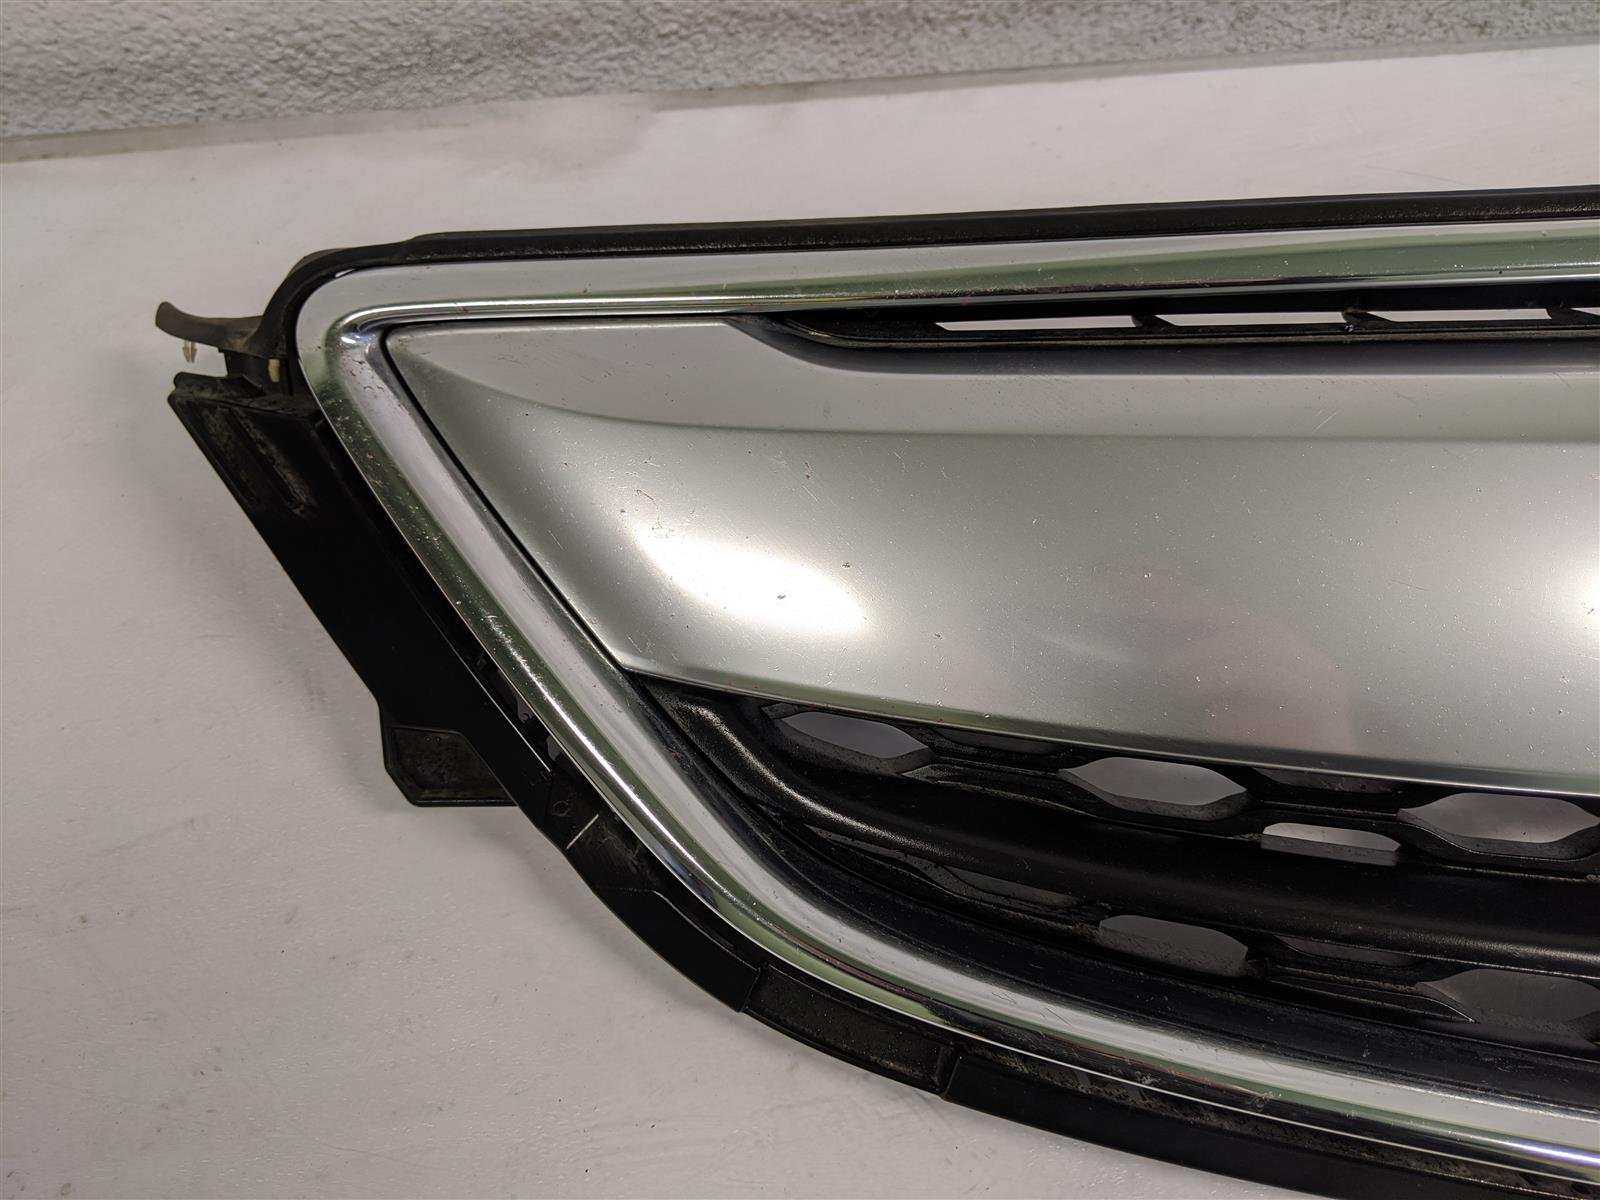 2015 Acura TLX Front Grille Assembly Replacement